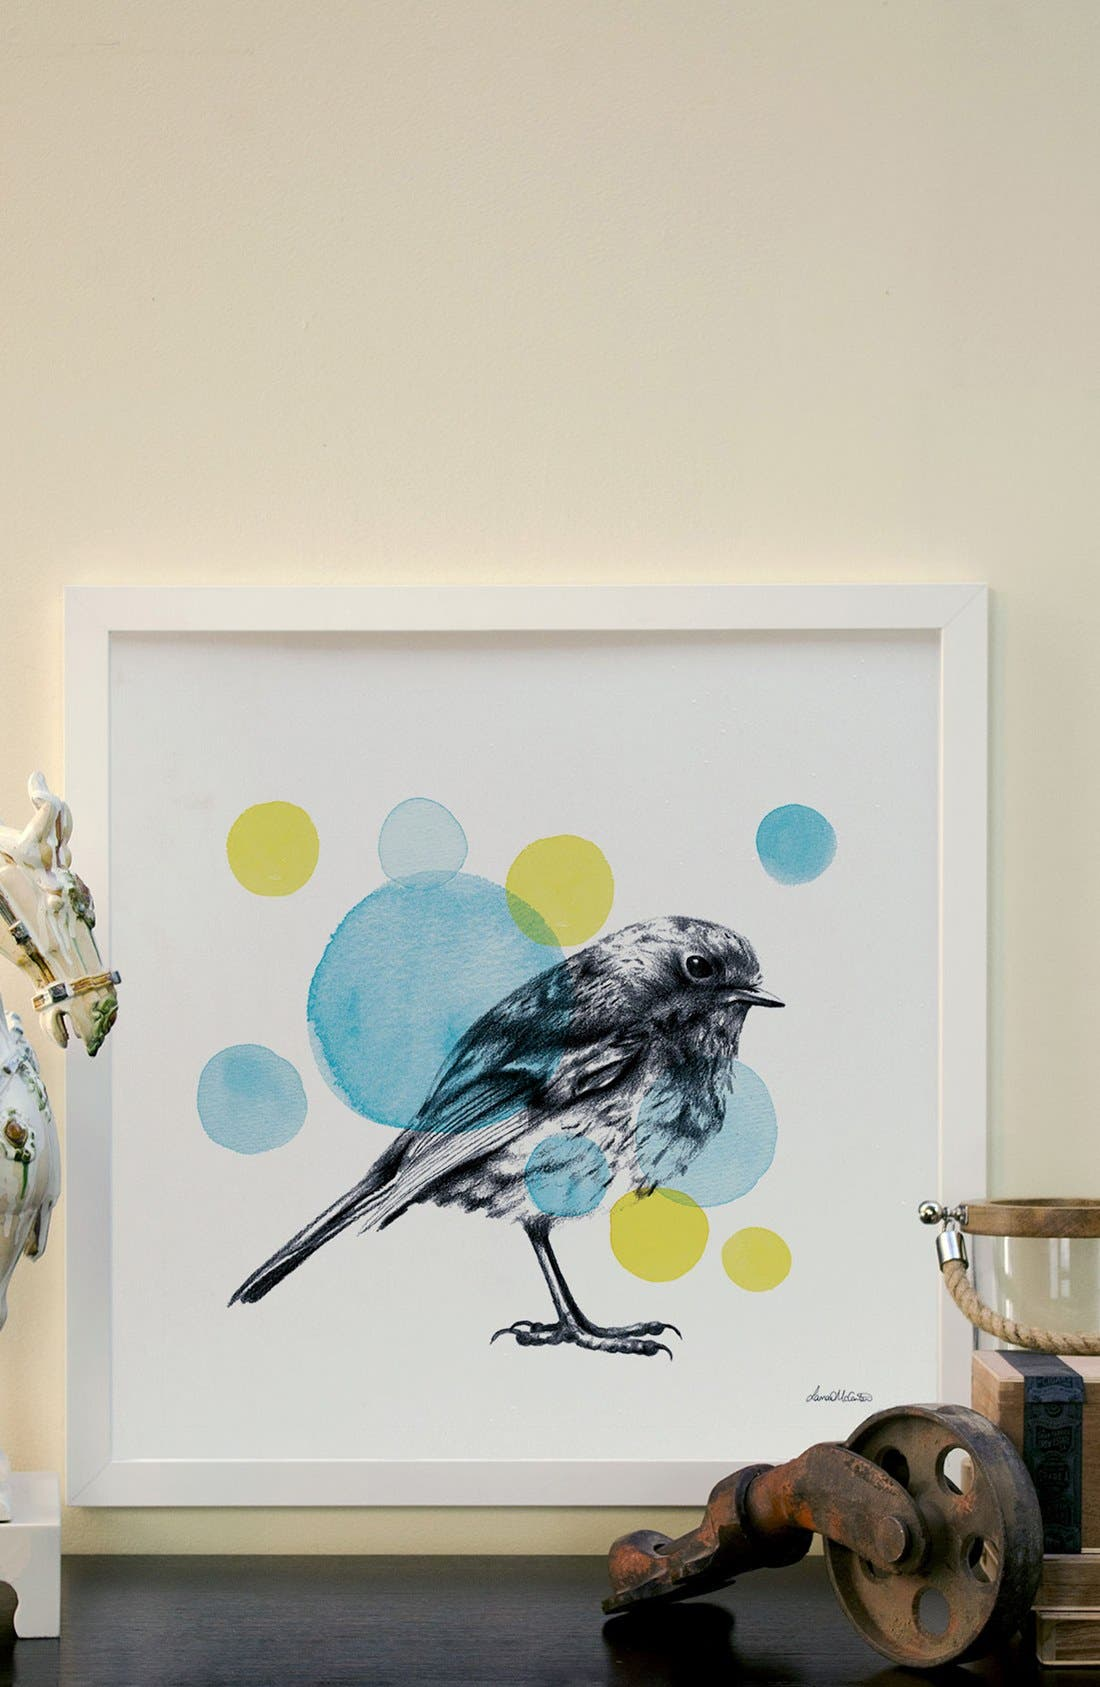 'Sketchbook - Bird' Giclée Print Framed Canvas Art,                             Alternate thumbnail 2, color,                             White